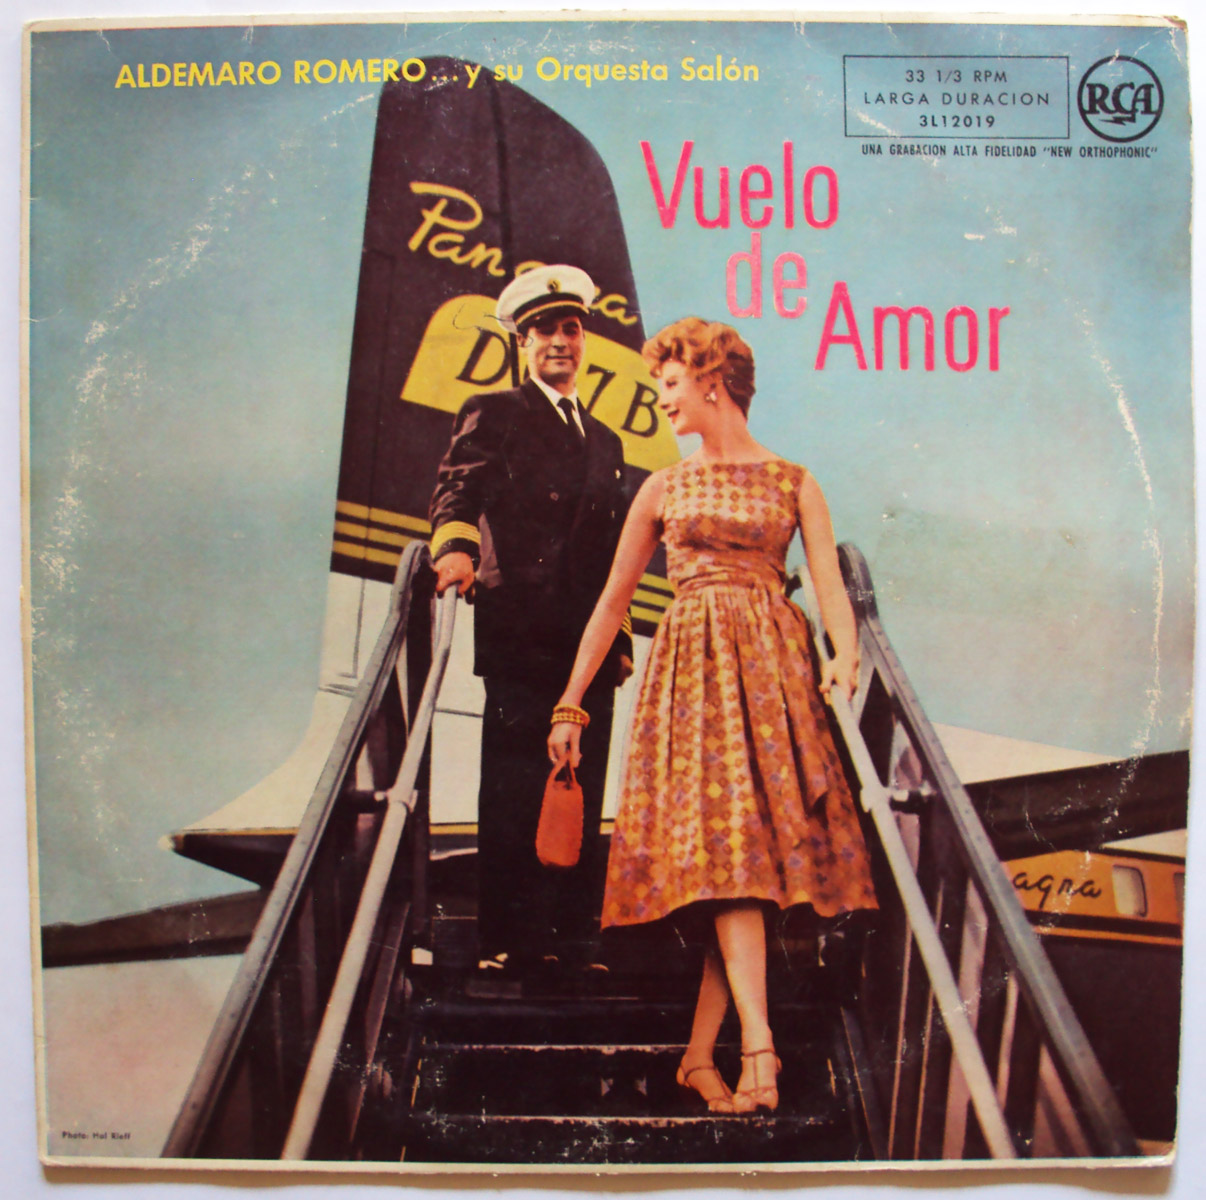 Aldemaro Romero y Su Orquesta Salon vuelo de amor (aka flight to romance)